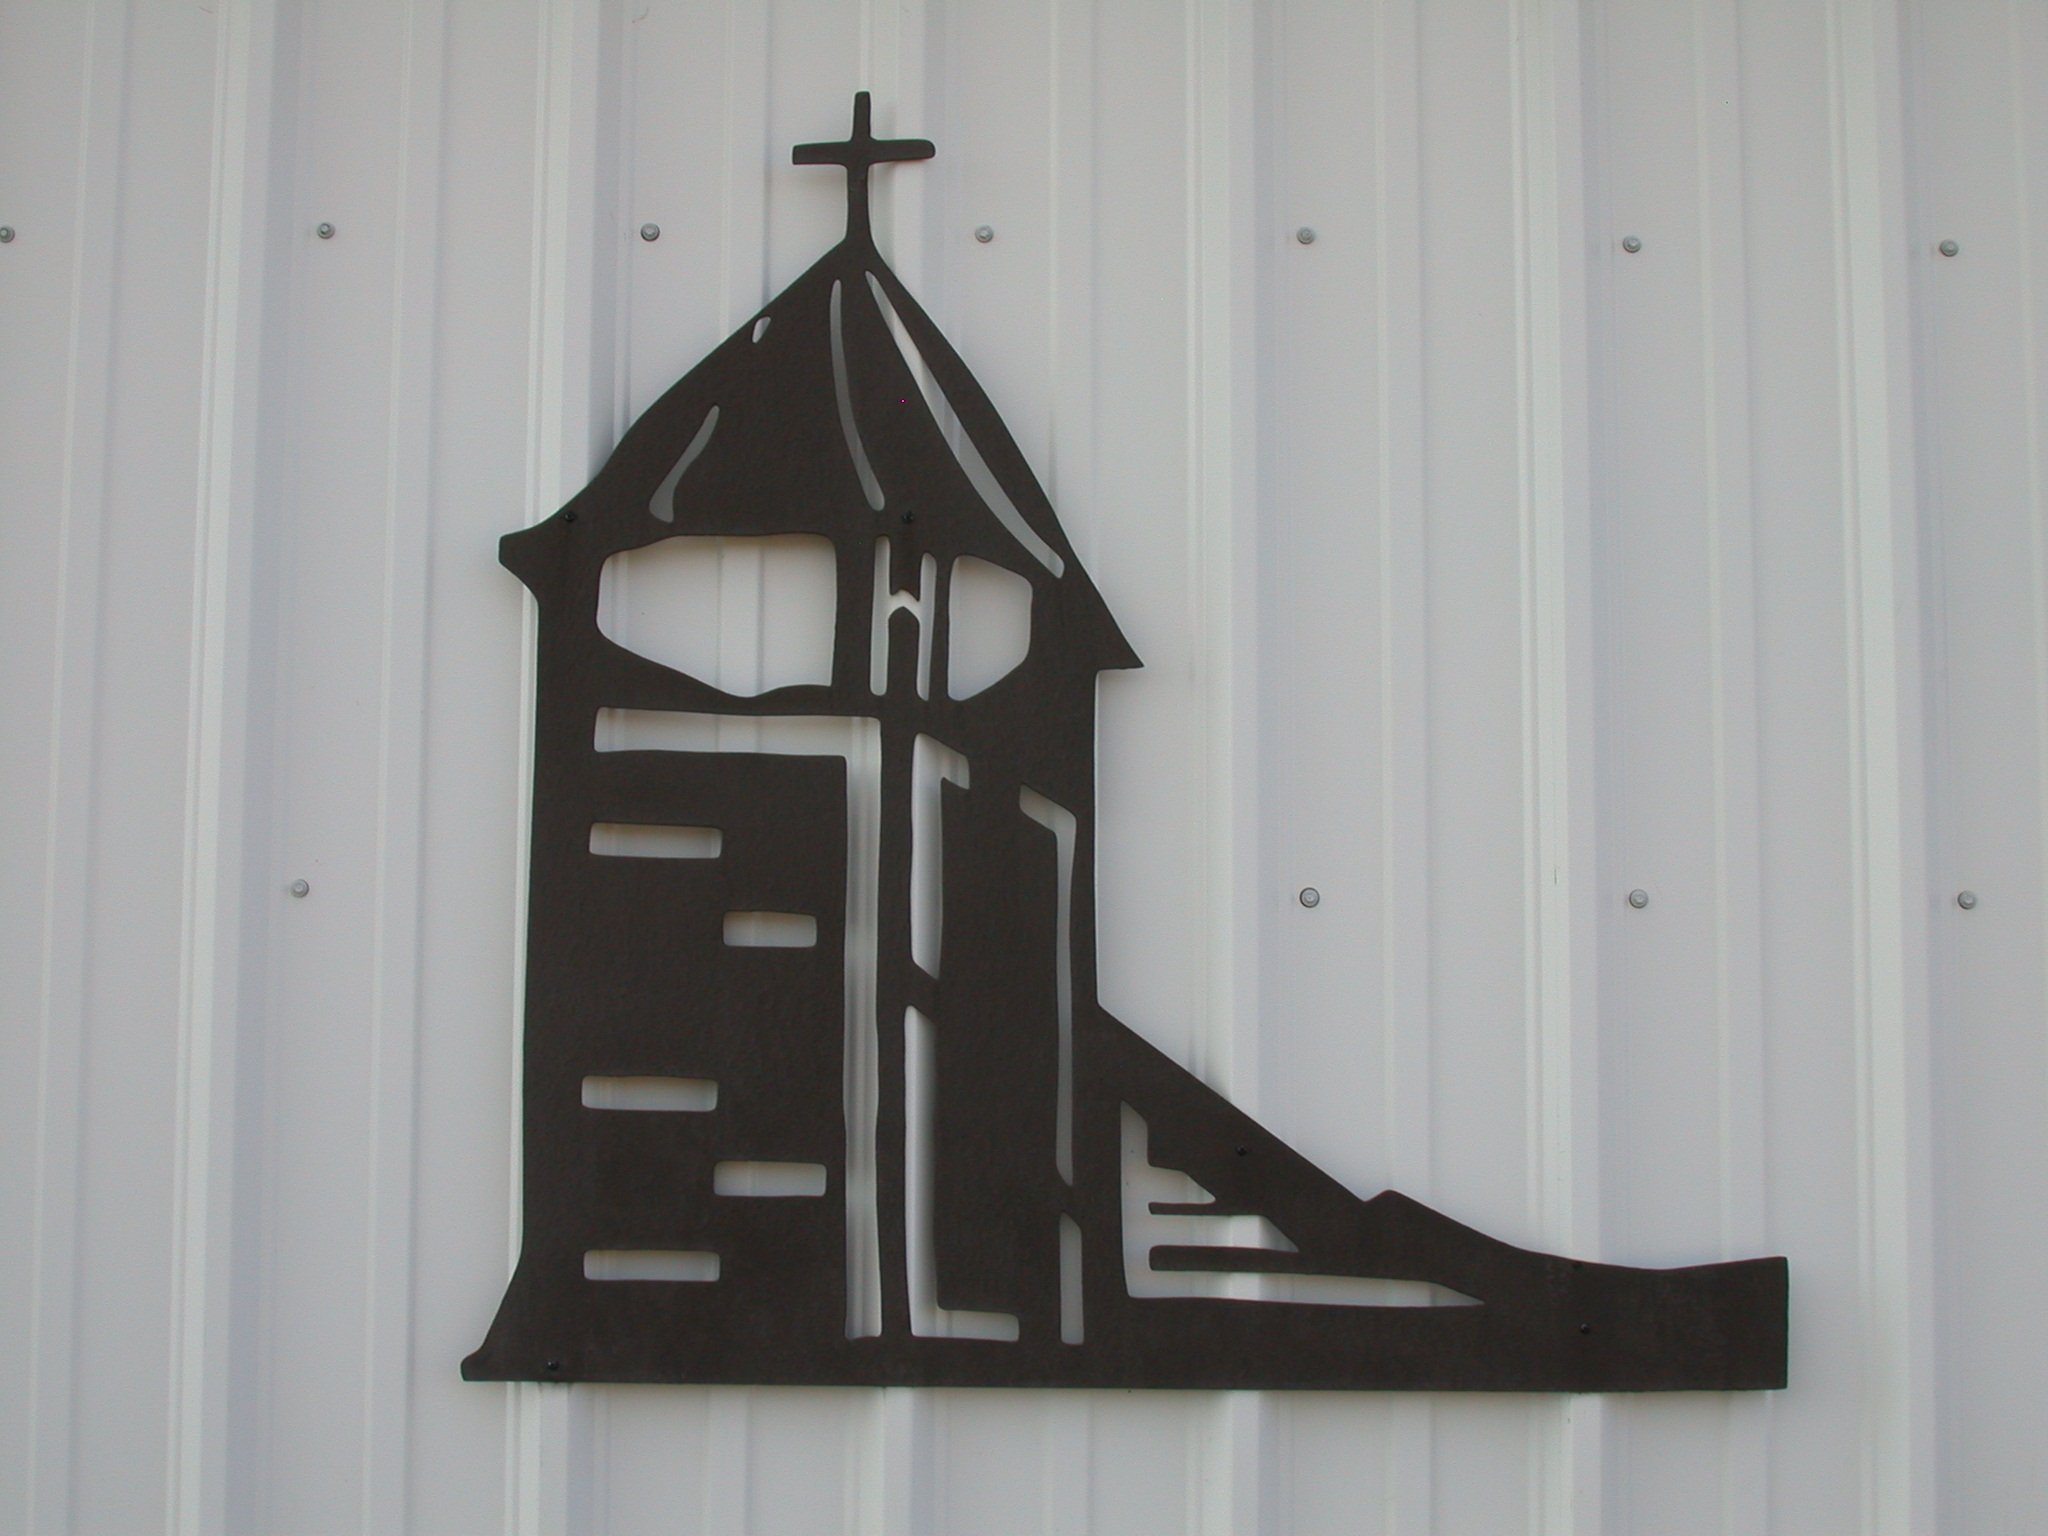 The St. Louis Church indicates the missions (Anglican & Catholic) that followed the Fur Trading settlers.